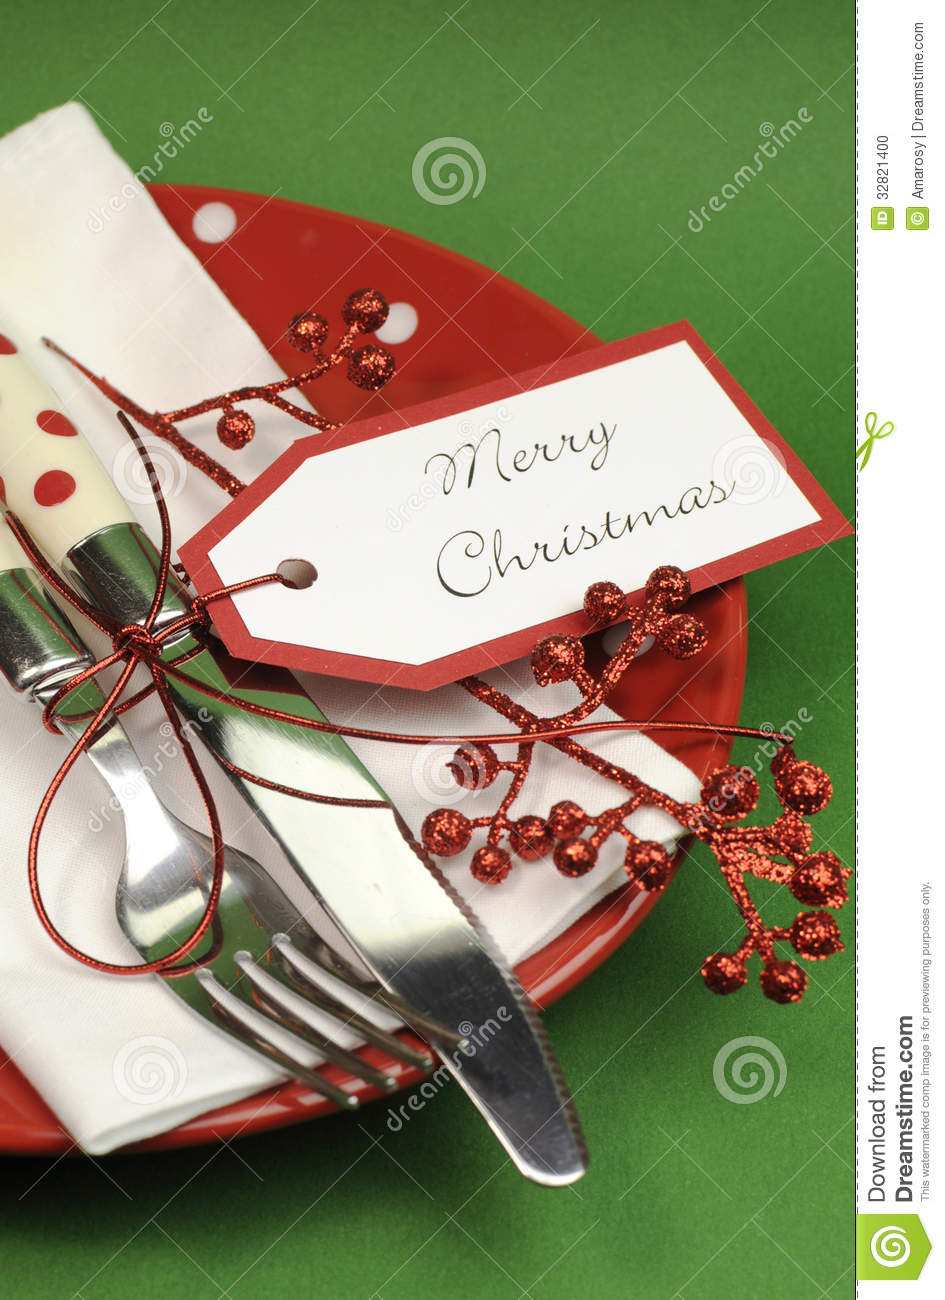 clipart christmas dinner pictures - photo #38